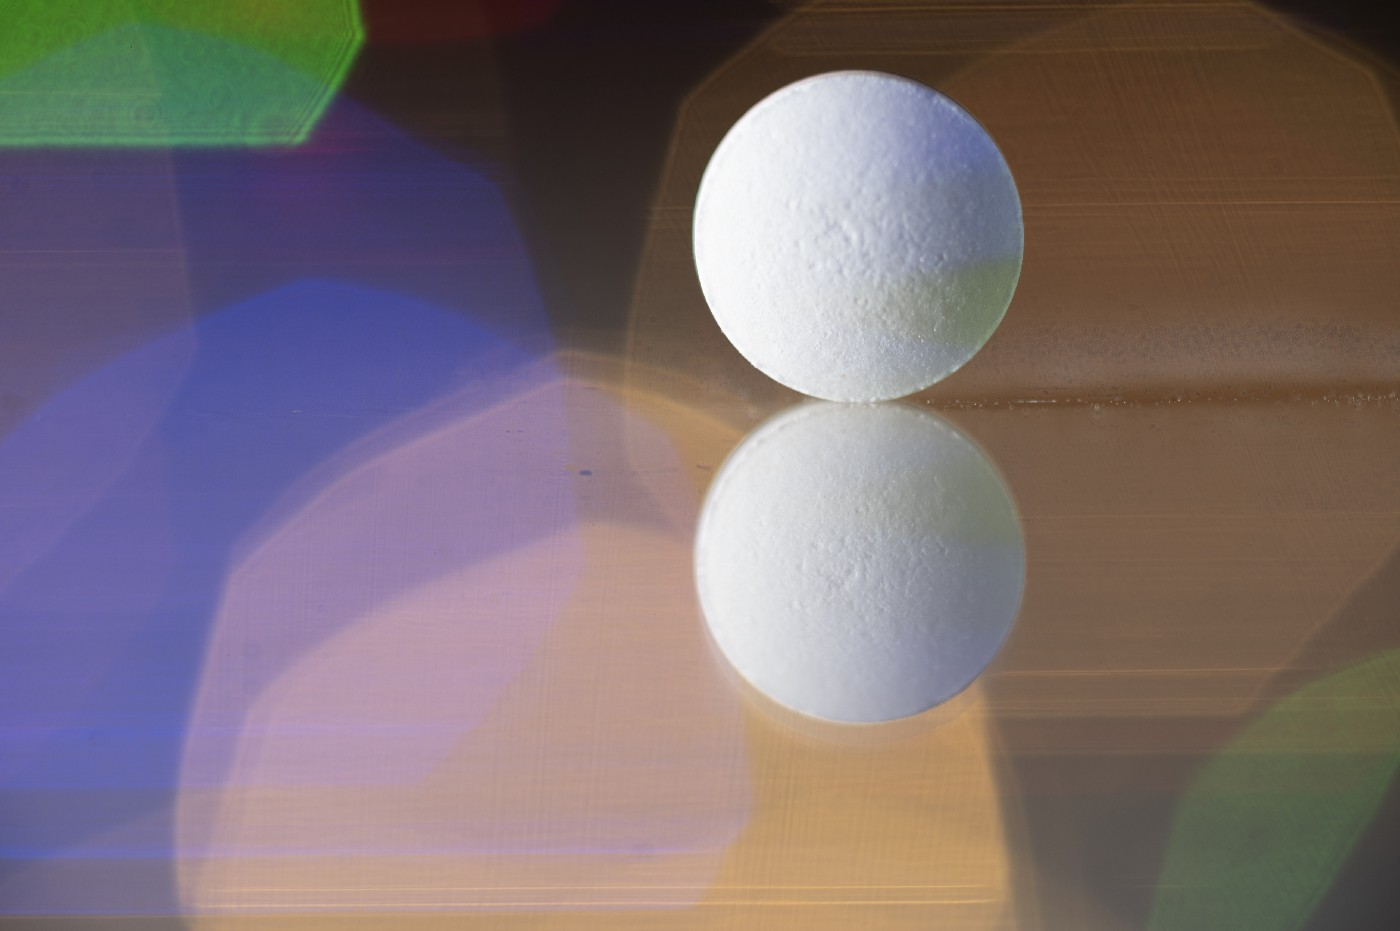 Close-up of a reflected pill on a reflective surface. Colorful lights background.